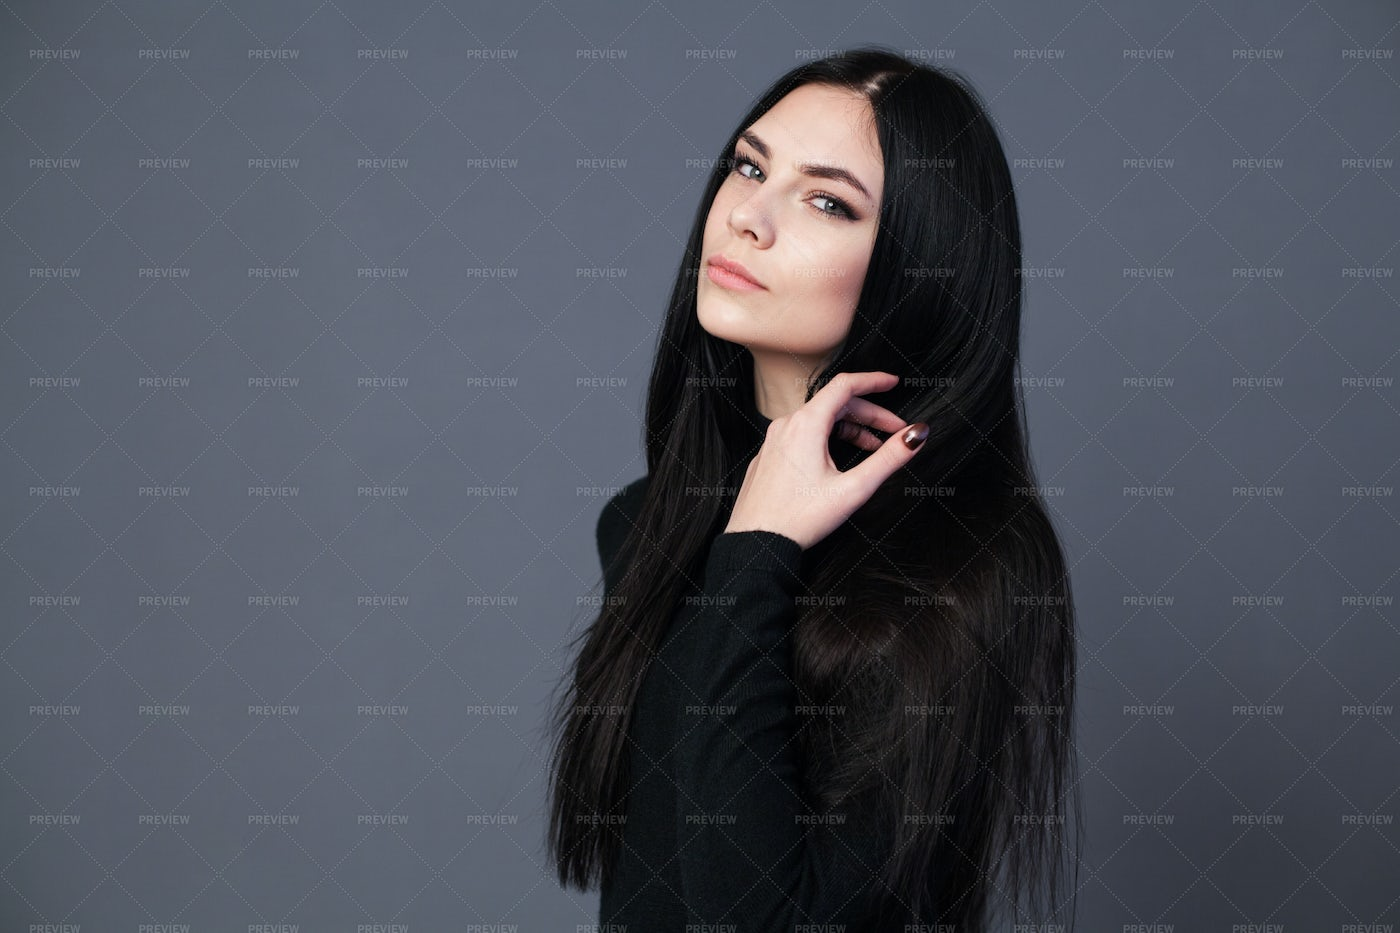 Side Portrait Of Long Hair Woman: Stock Photos